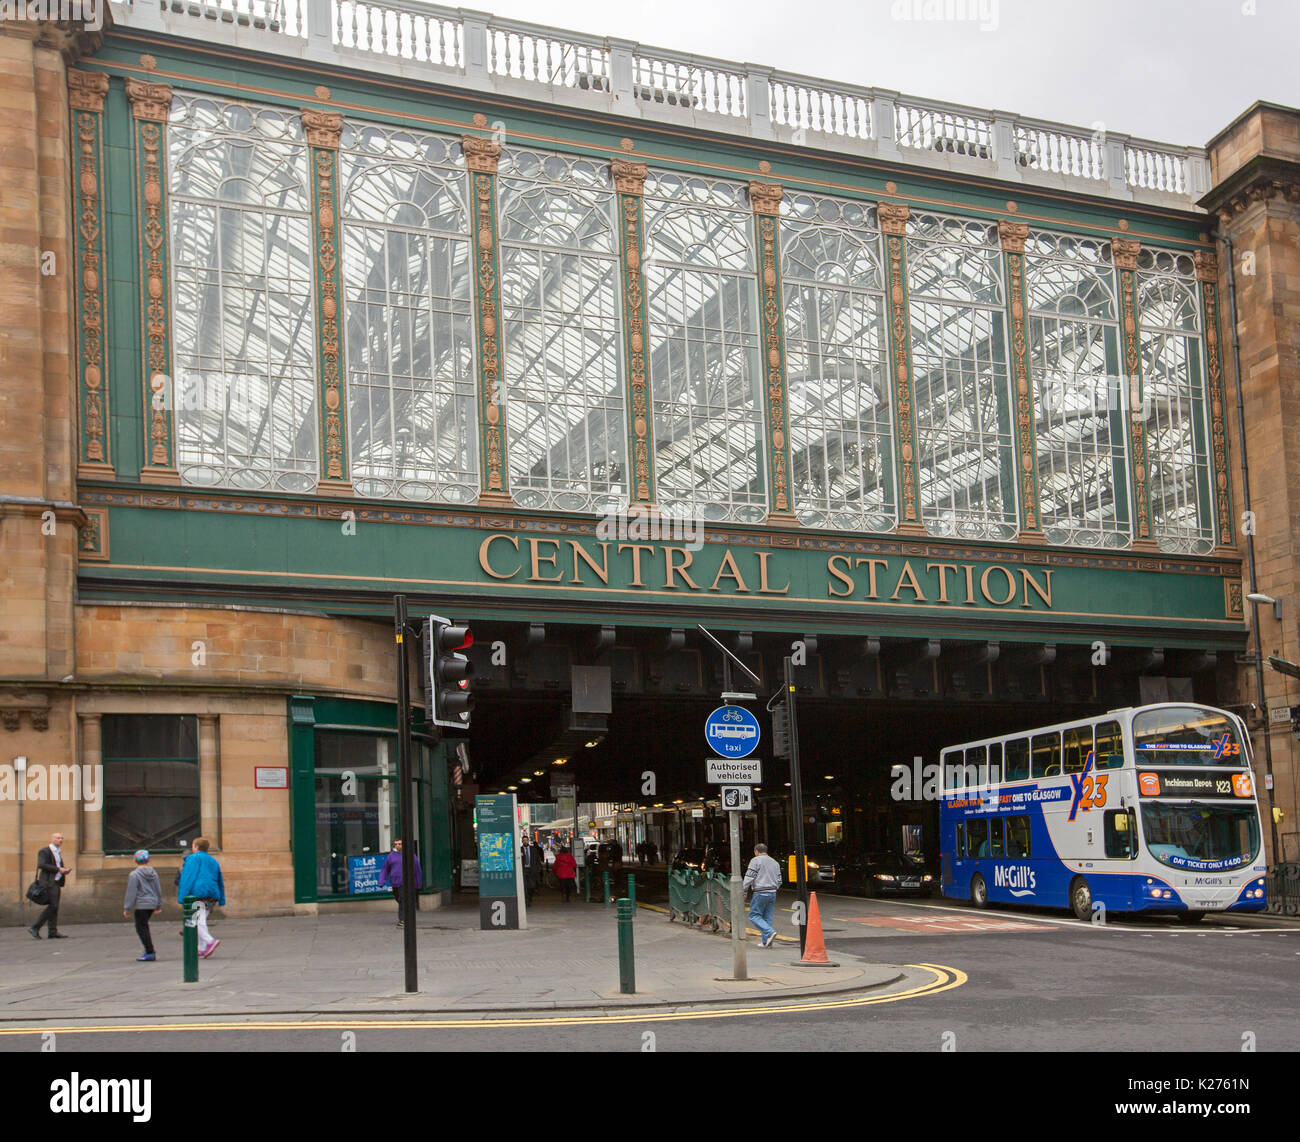 Historic central railway station entrance with double decker bus emerging from tunnel  beneath high glass façade and roof in city of Glasgow, Scotland - Stock Image